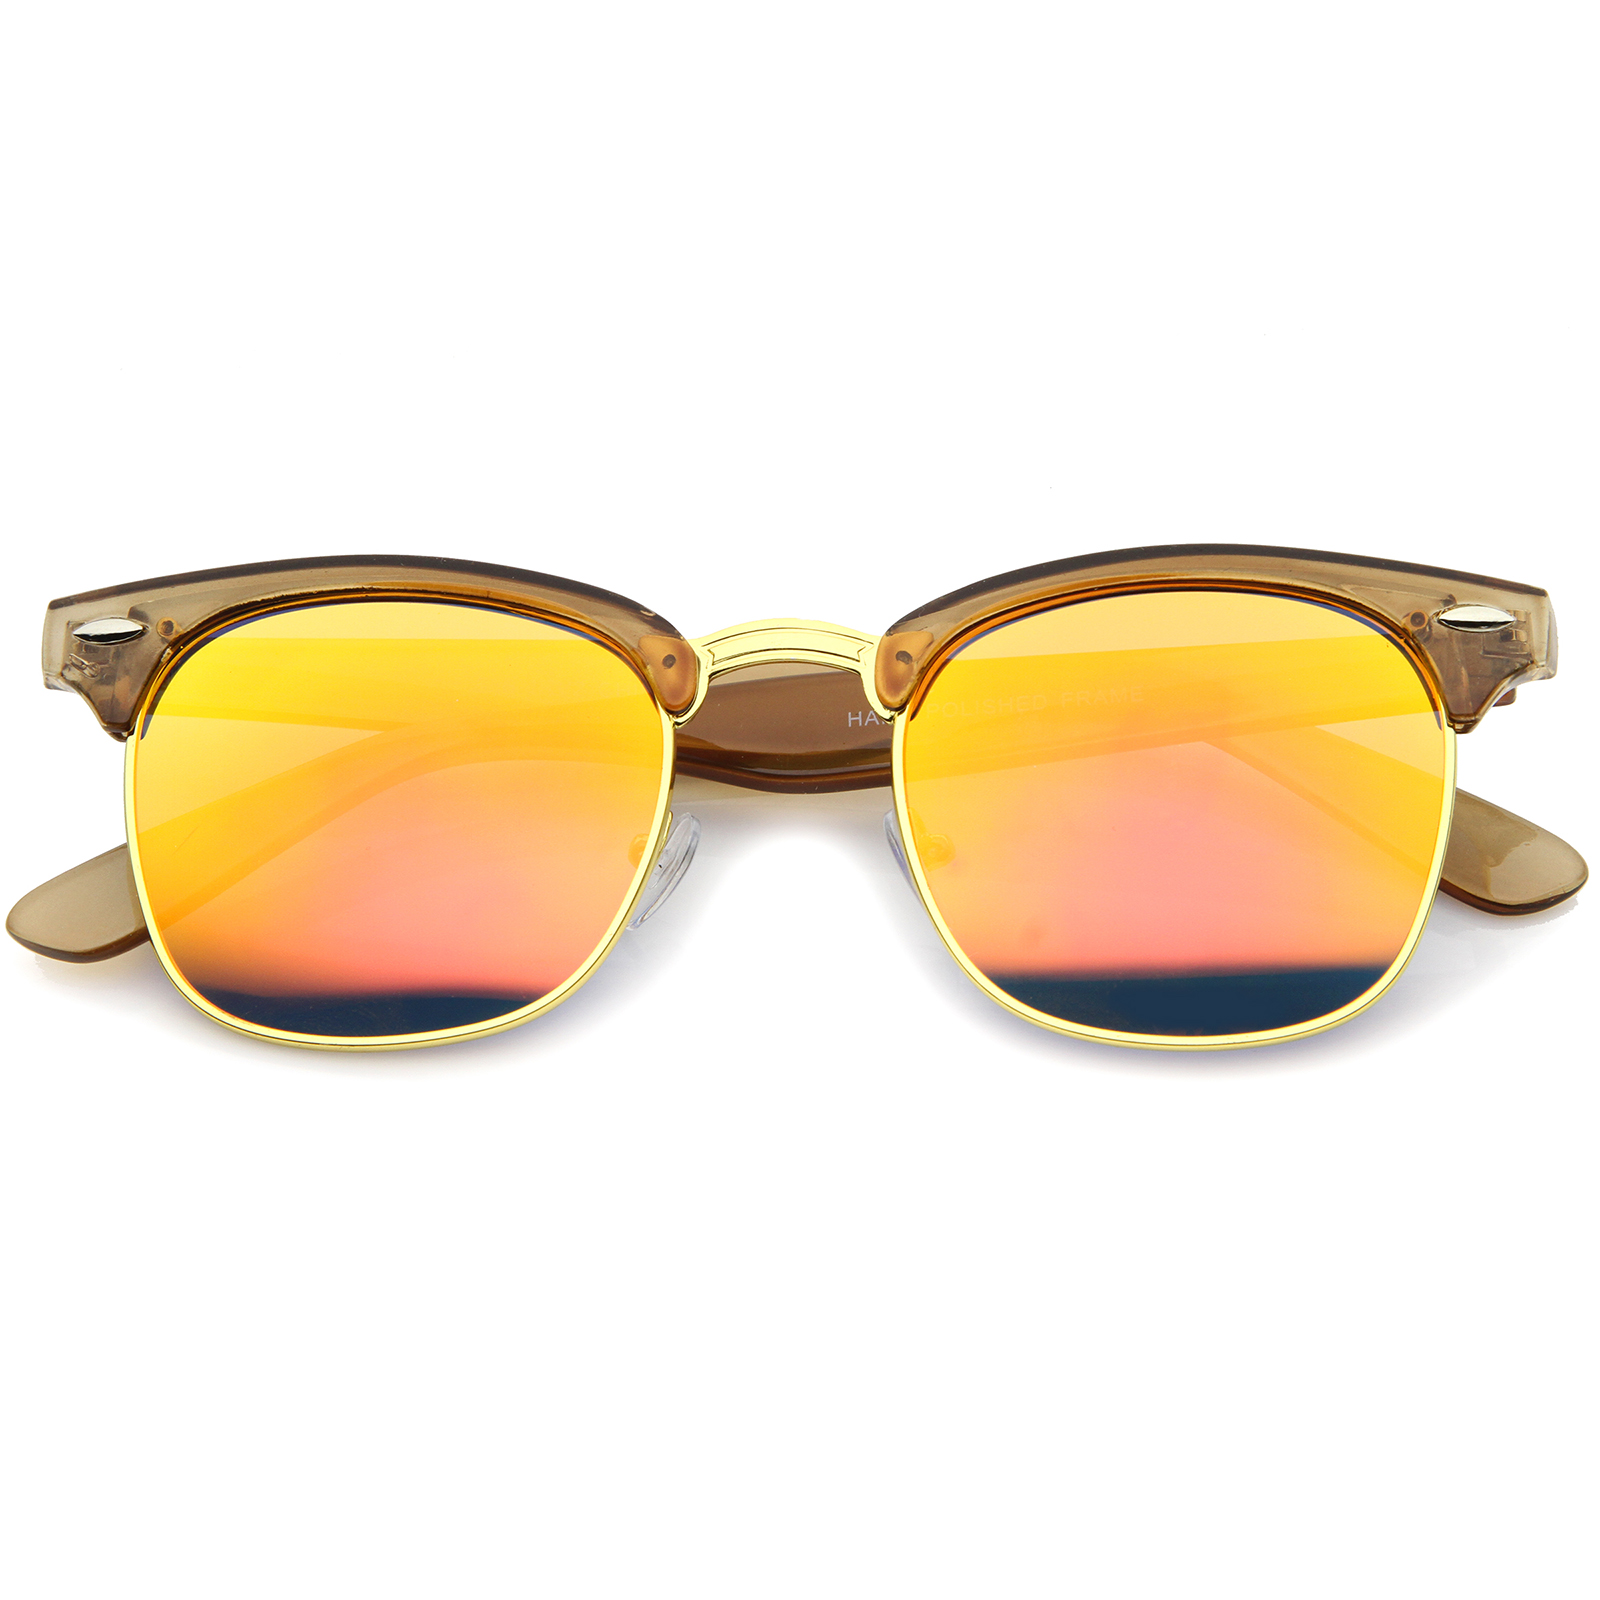 sunglassLA - Womens Horn Rimmed Sunglasses With UV400 Protected Mirrored Lens - 49mm